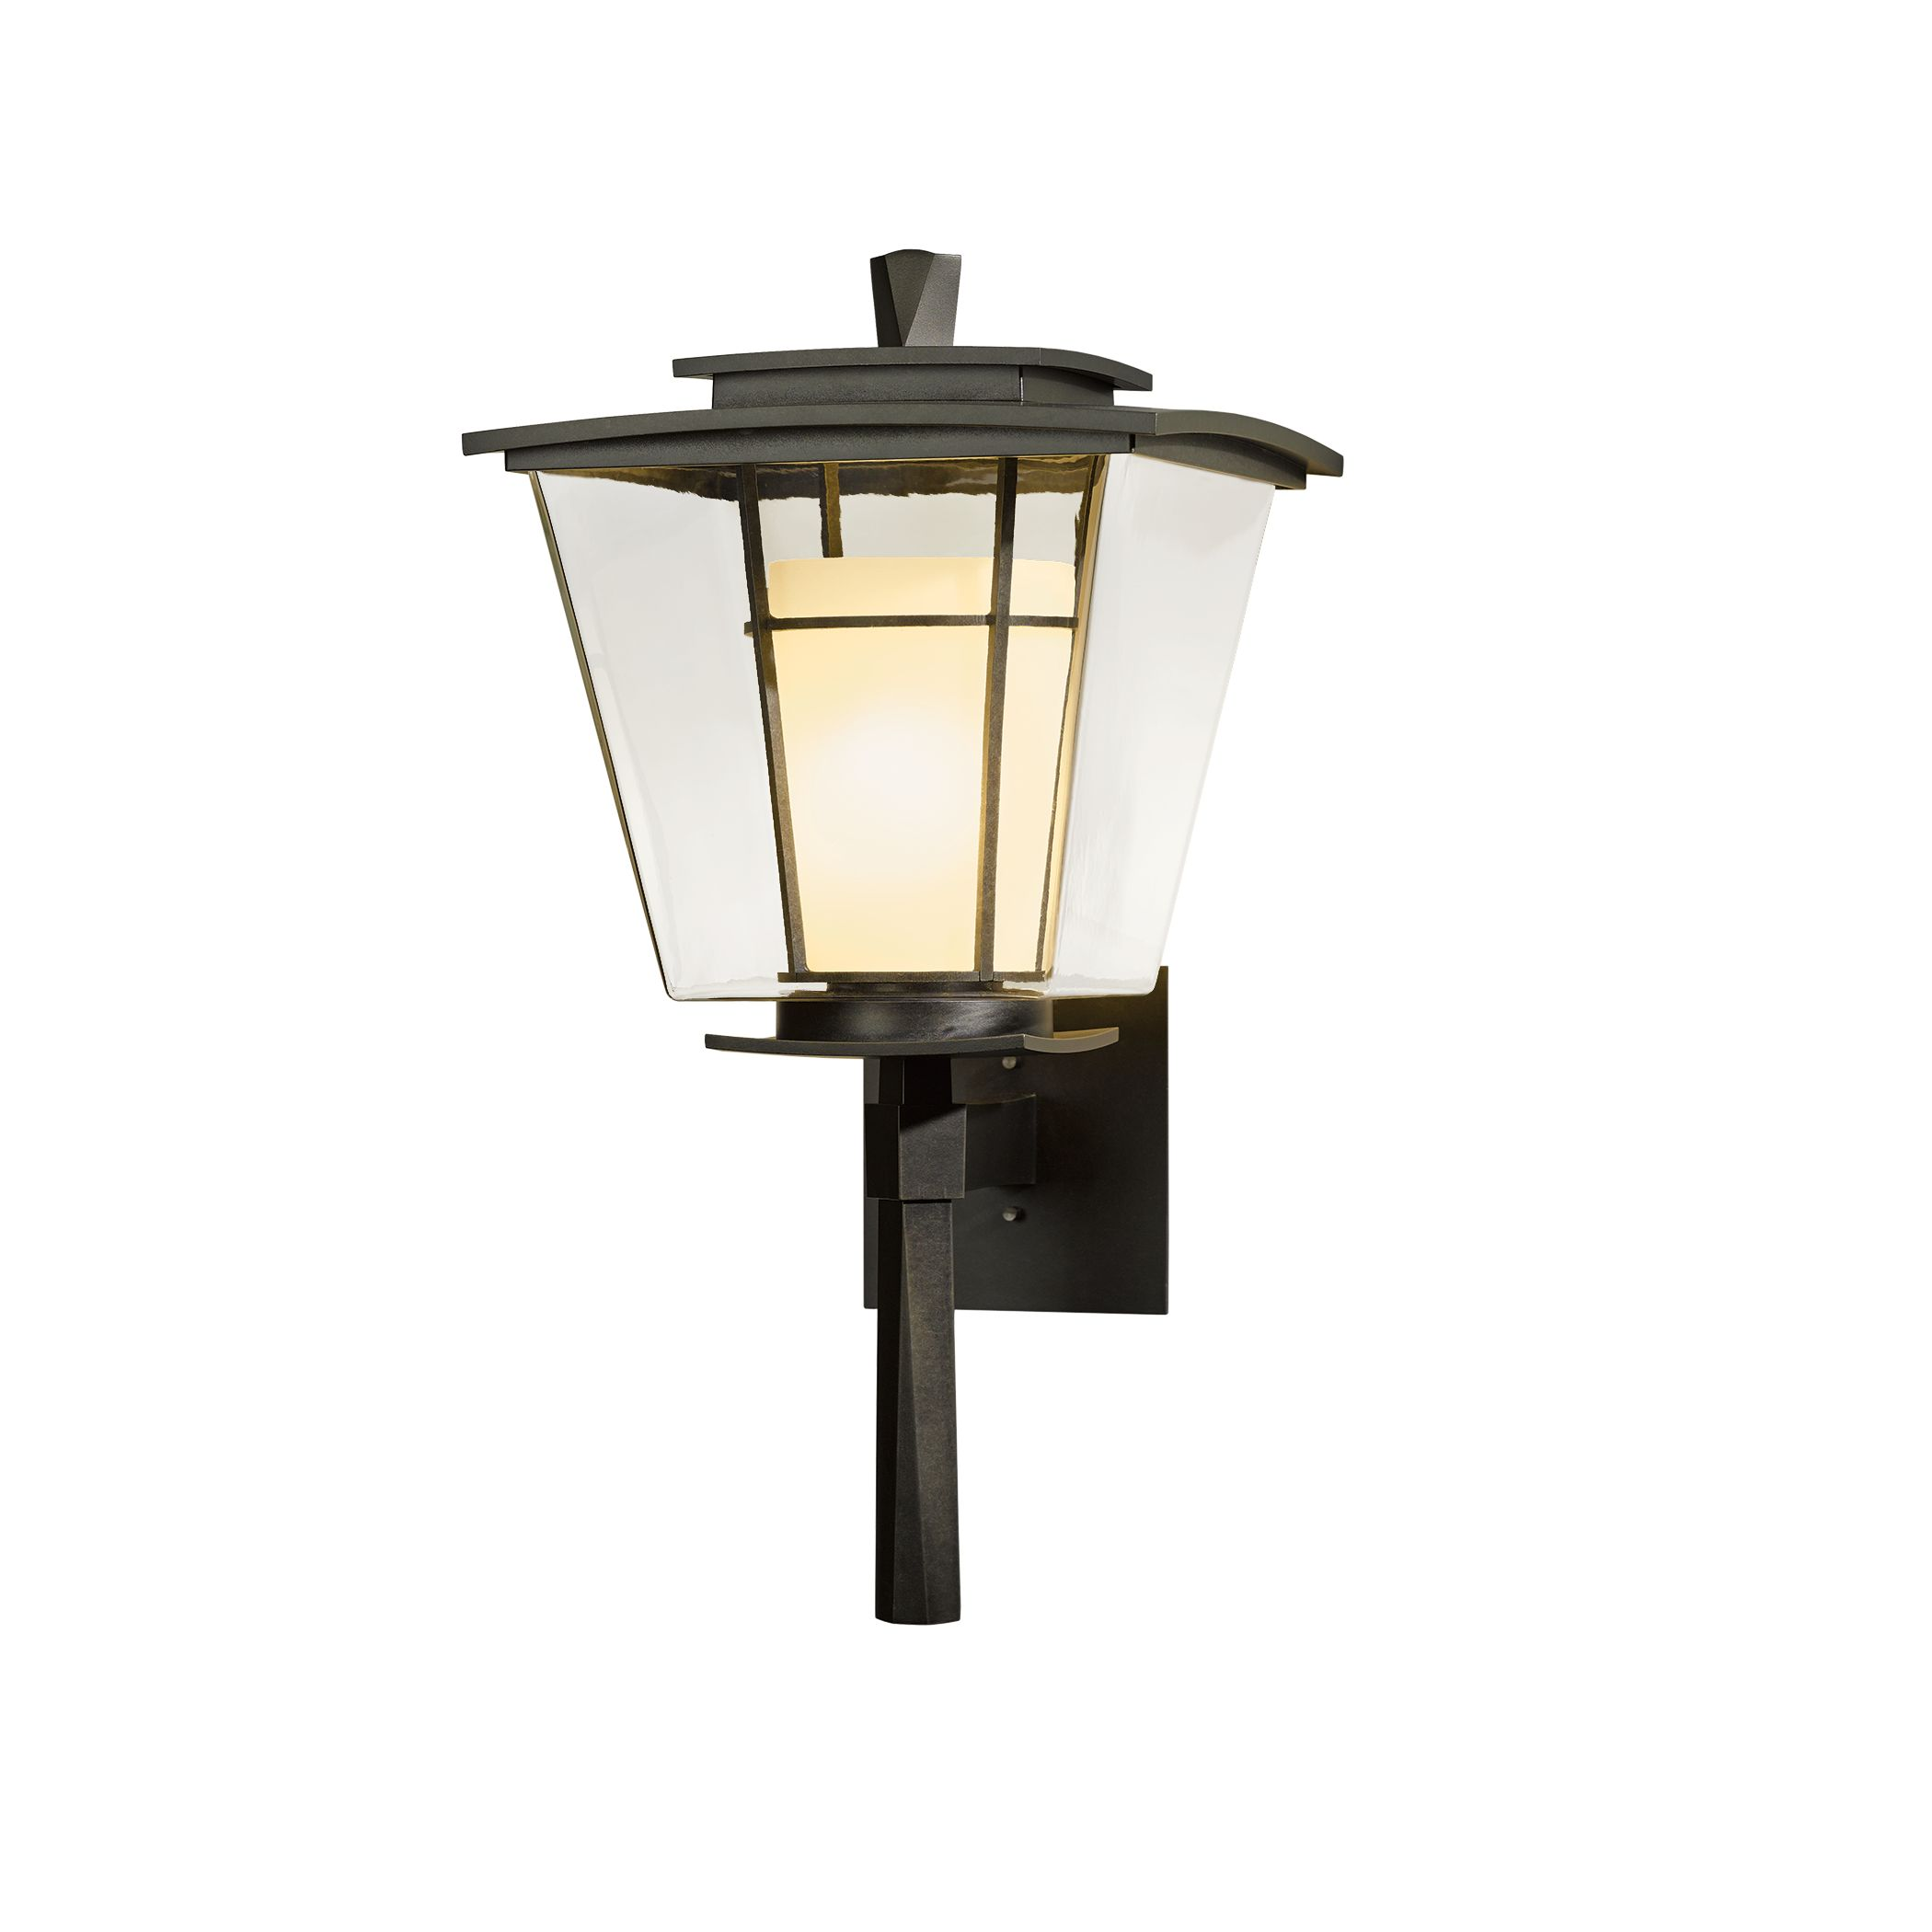 Thumbnail for Beacon Hall Large Outdoor Sconce